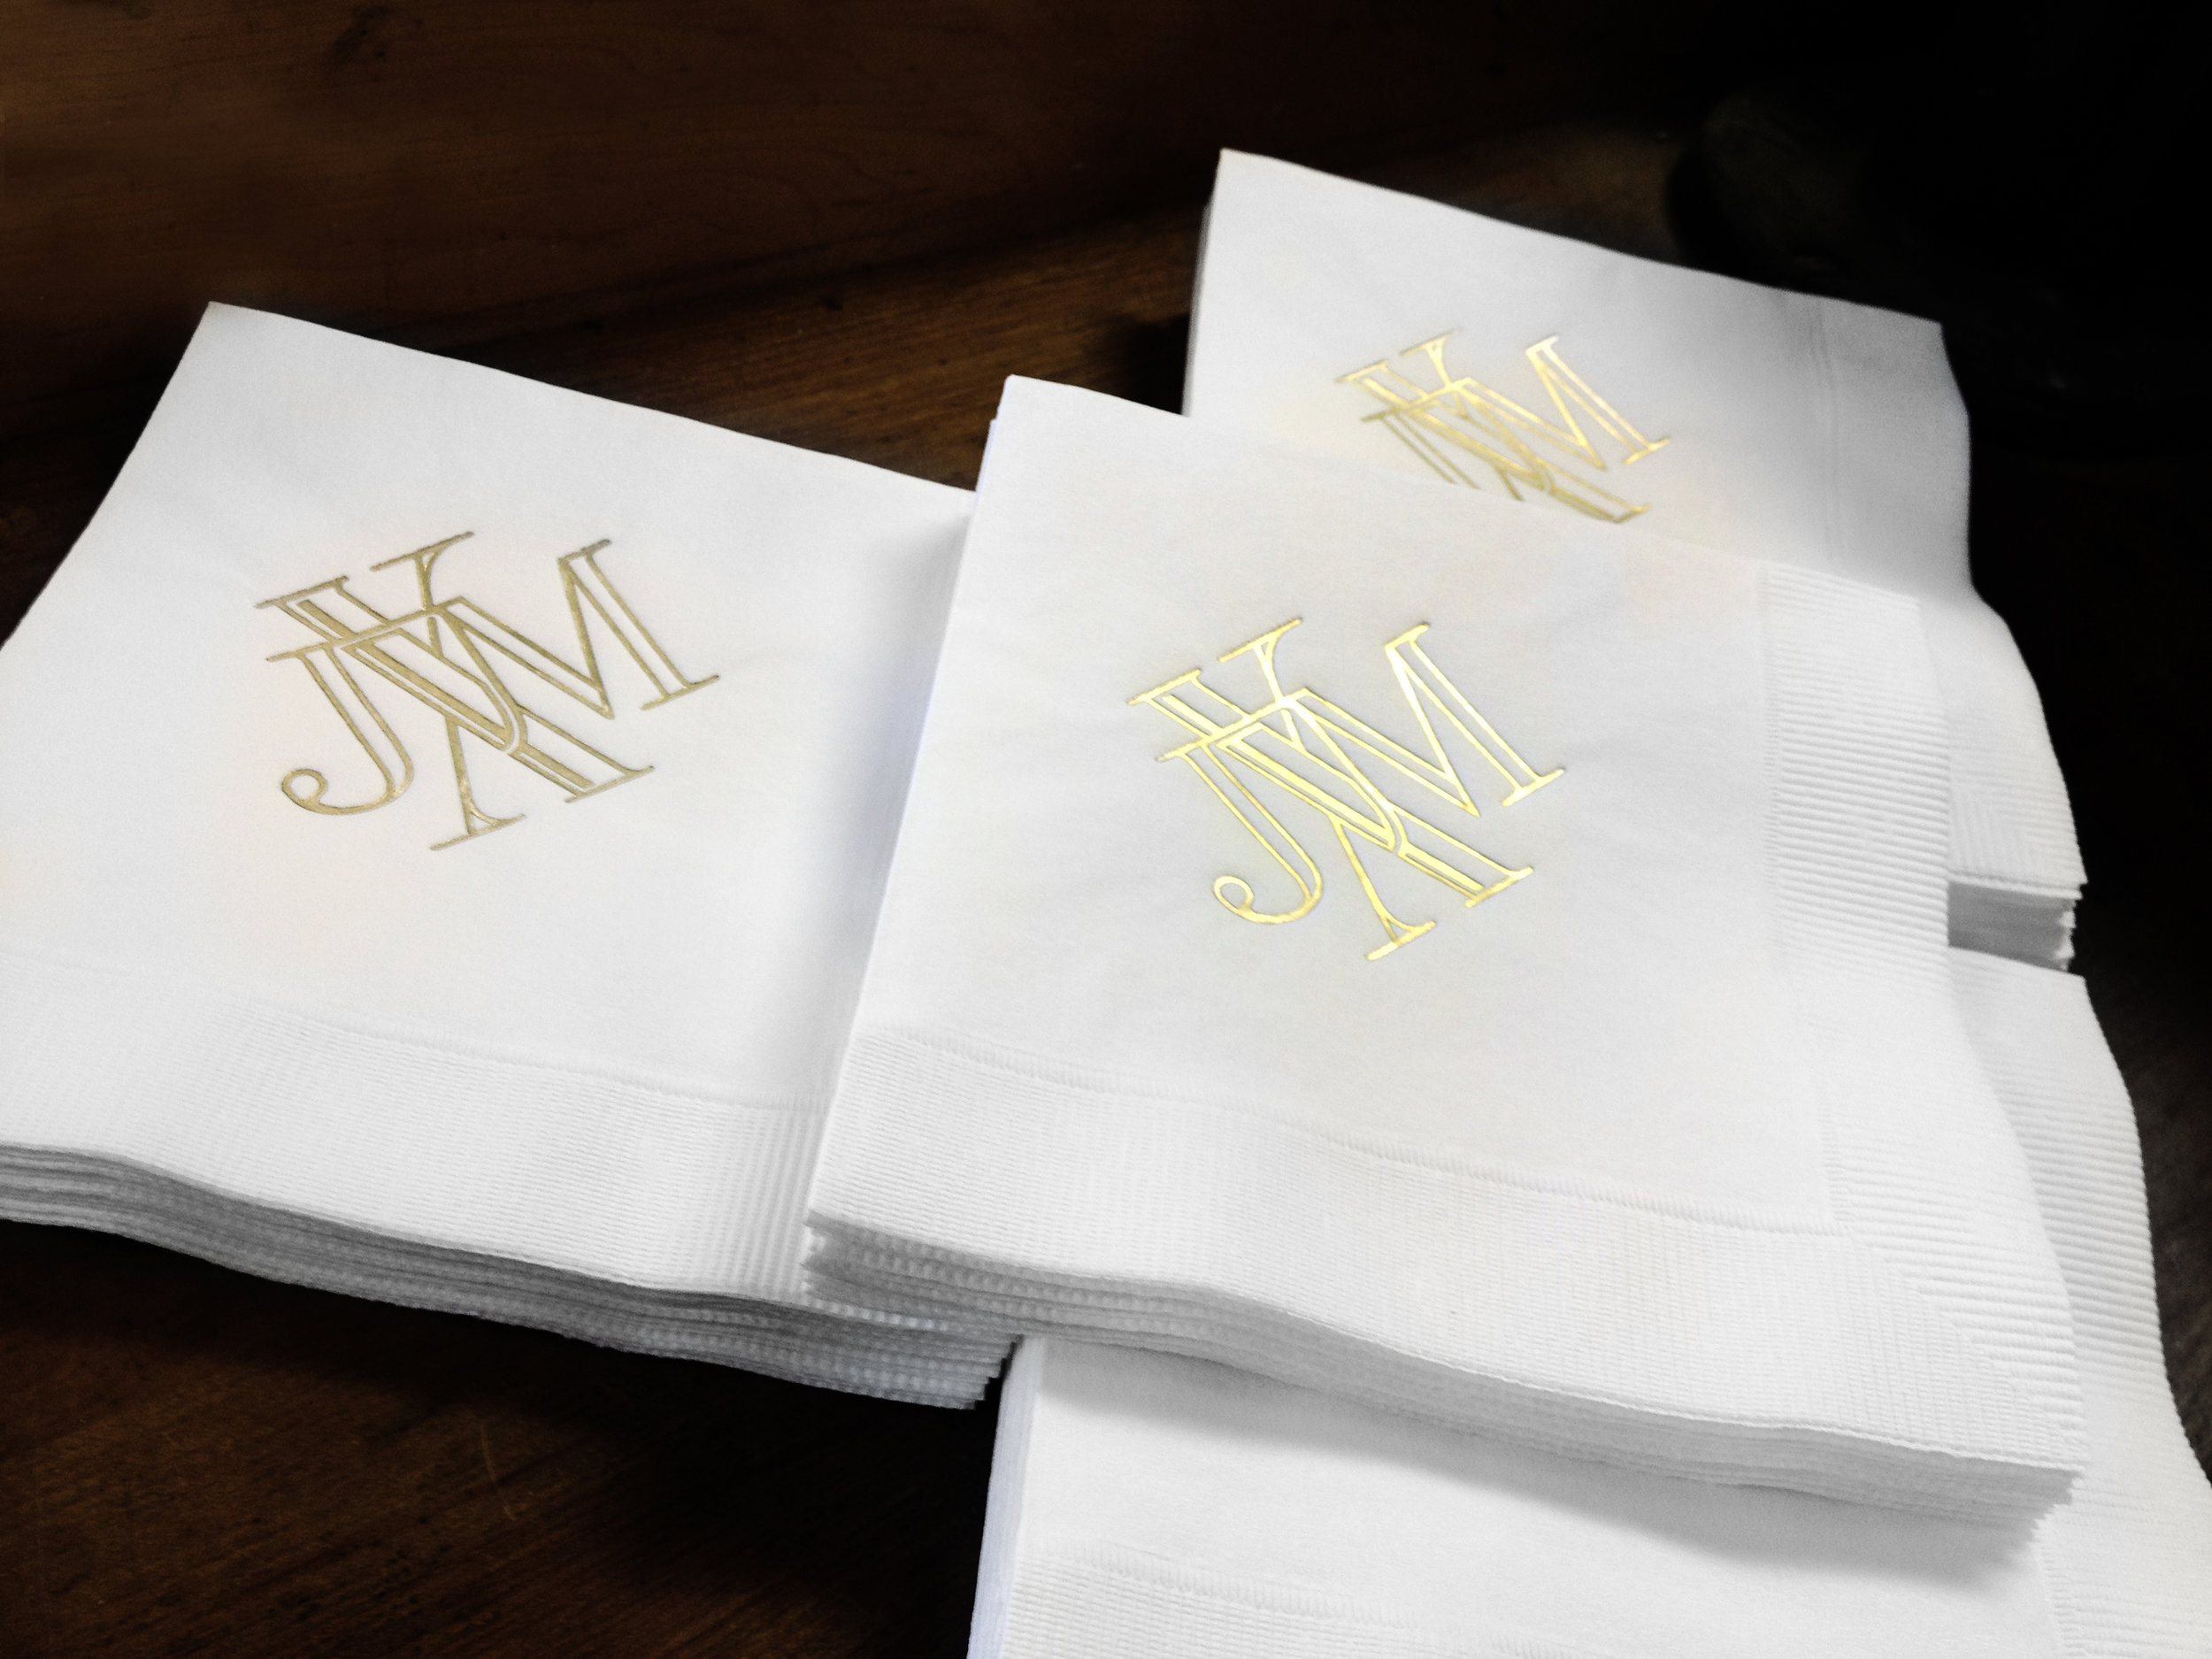 cocktail-napkin-gold-foil-custom-monogram-design.jpg